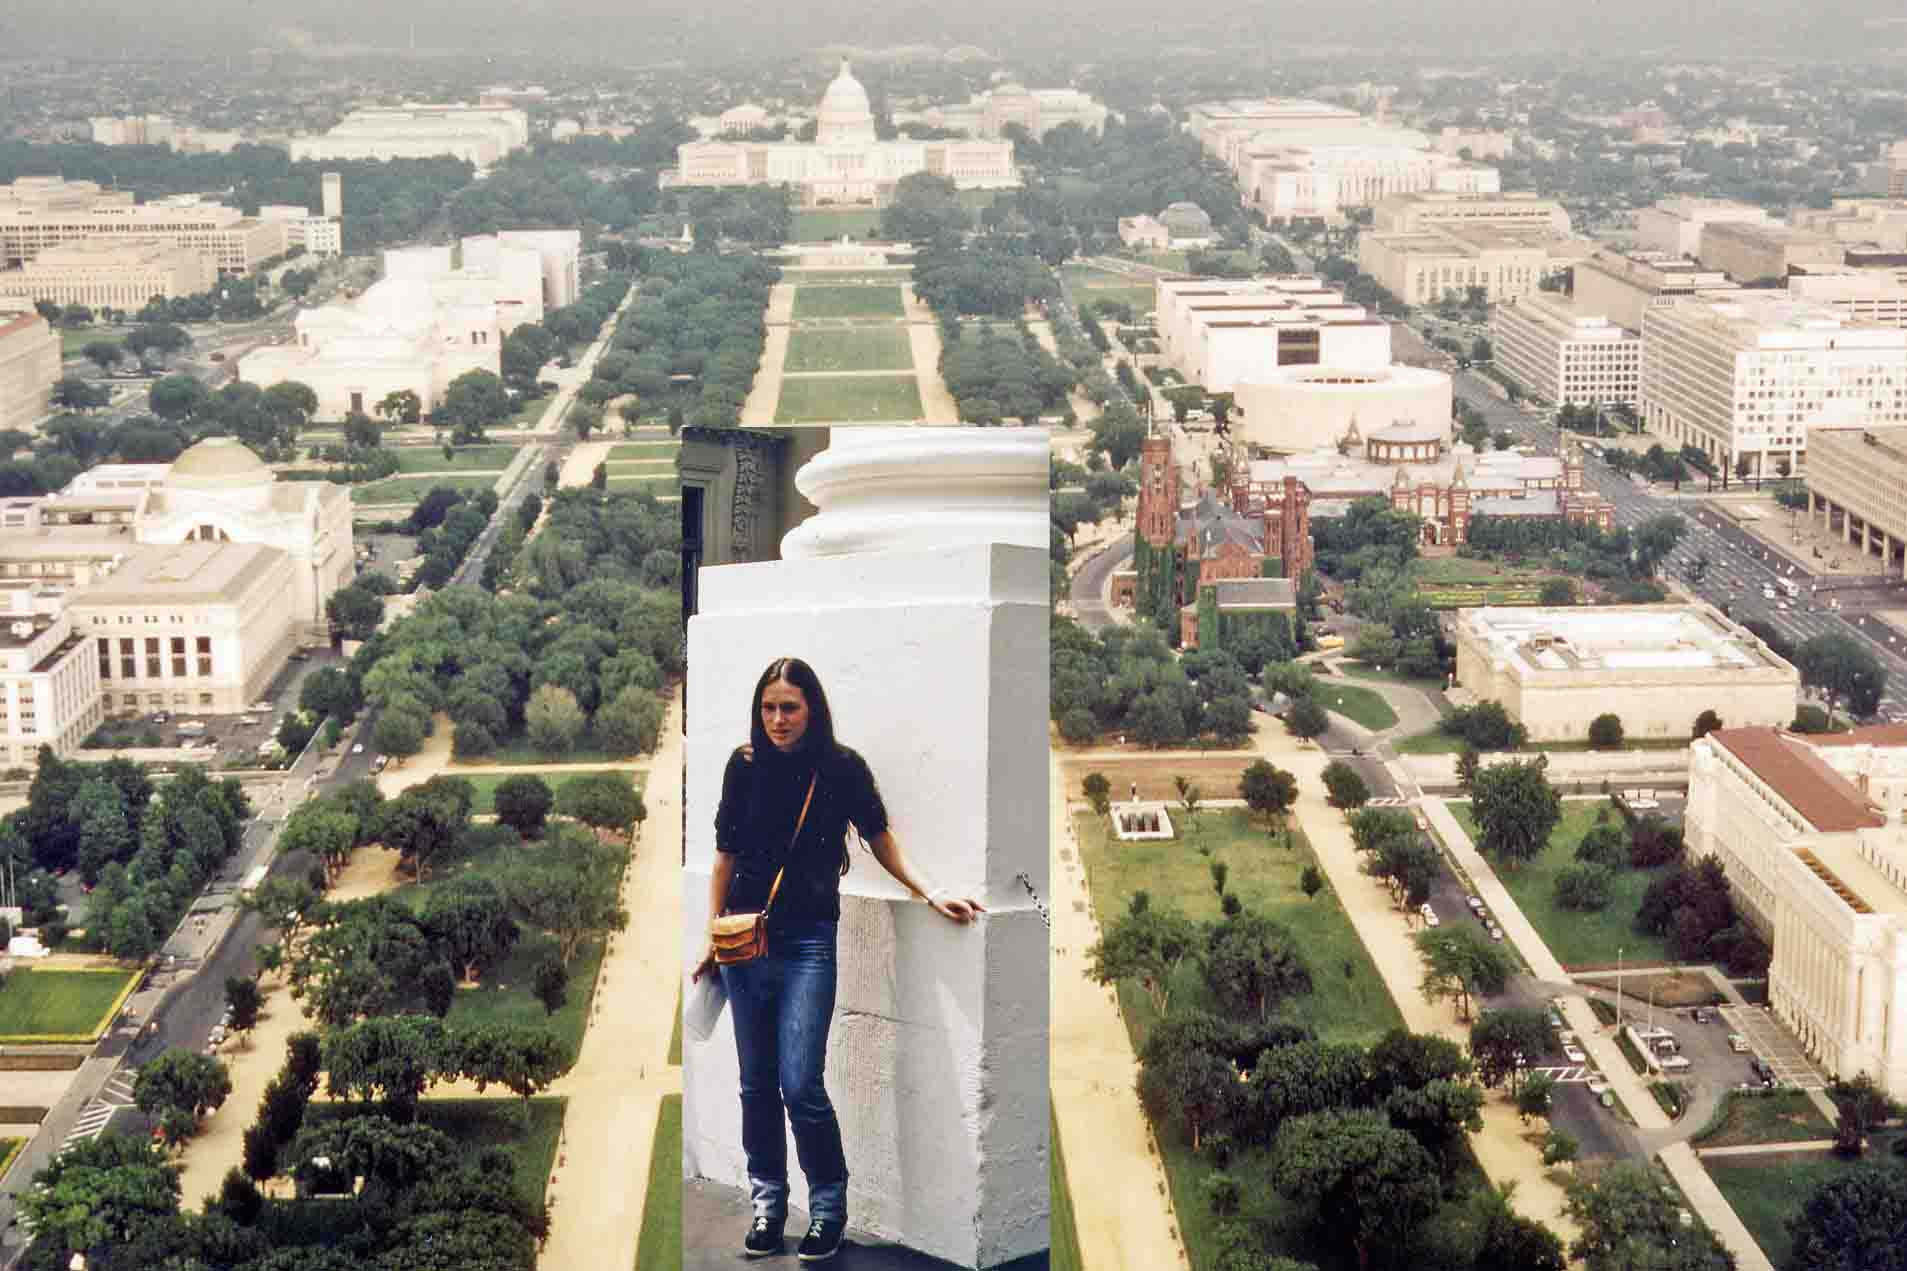 White House in Washington 1981